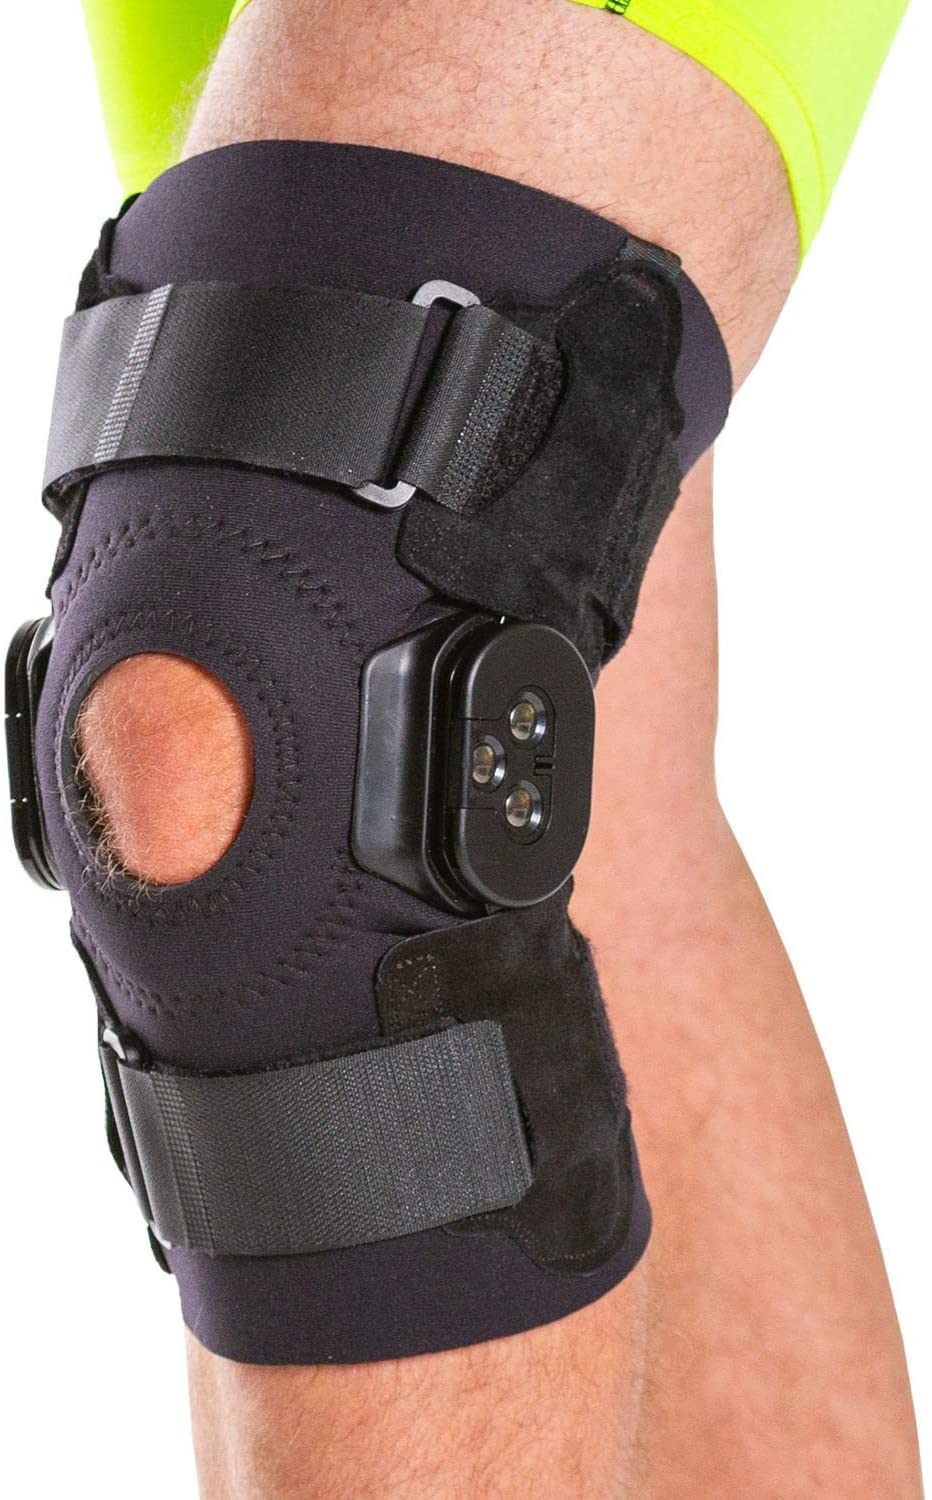 BraceAbility Torn Meniscus ROM Knee Brace   Hinged Post Surgery Support with Flexion / Extension Control for Hyperextension & Locking Treatment, Ligament (PCL / ACL) Tears, Osteoarthritis (2XL)